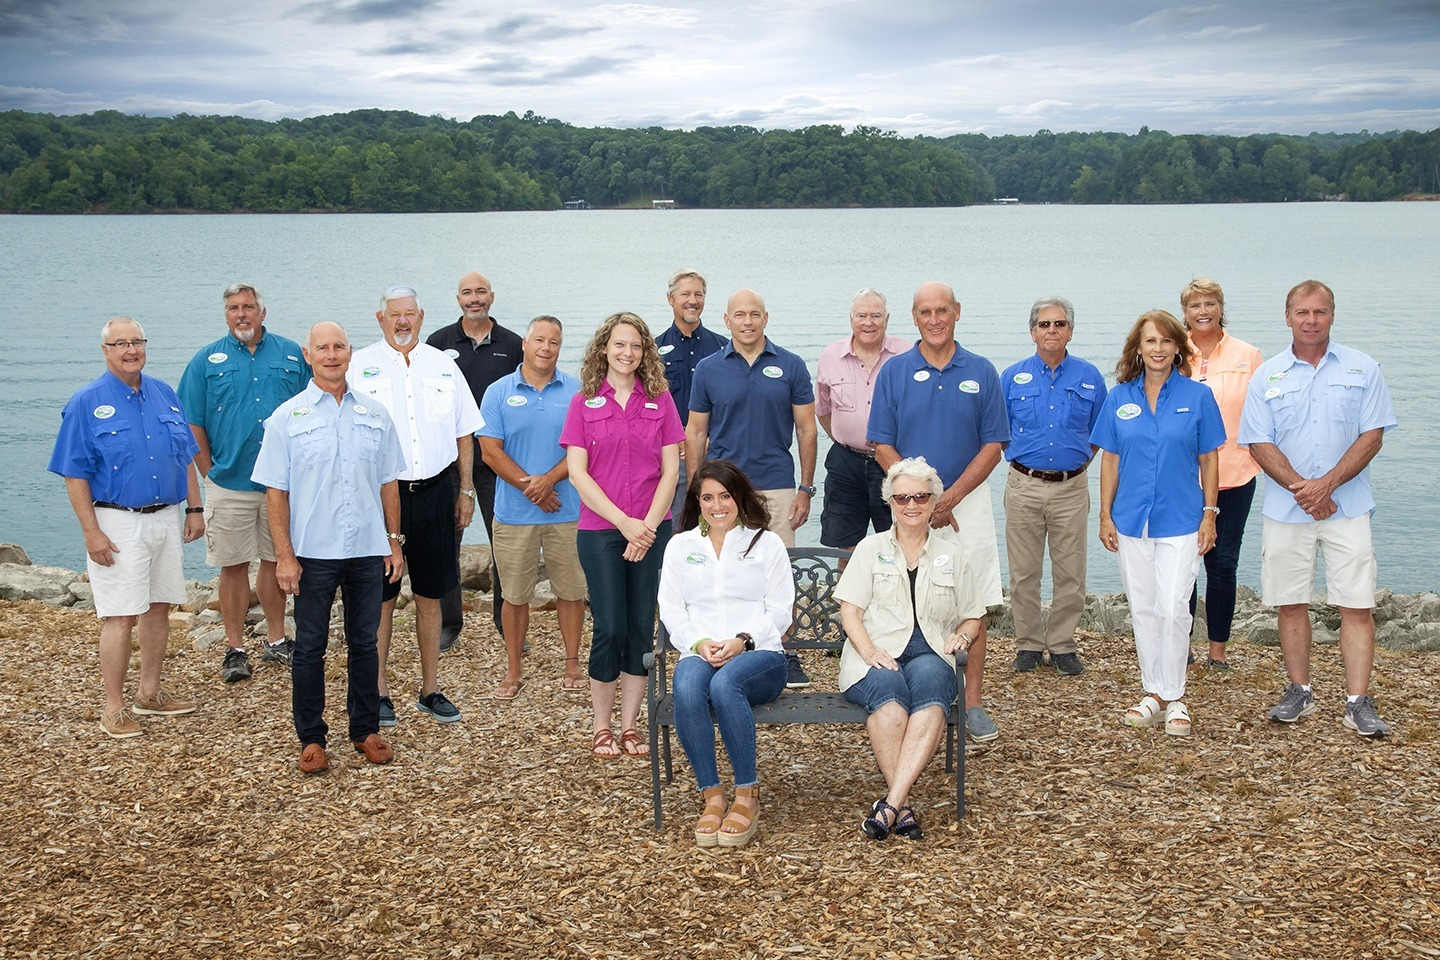 Board members posing in front of Lake Lanier